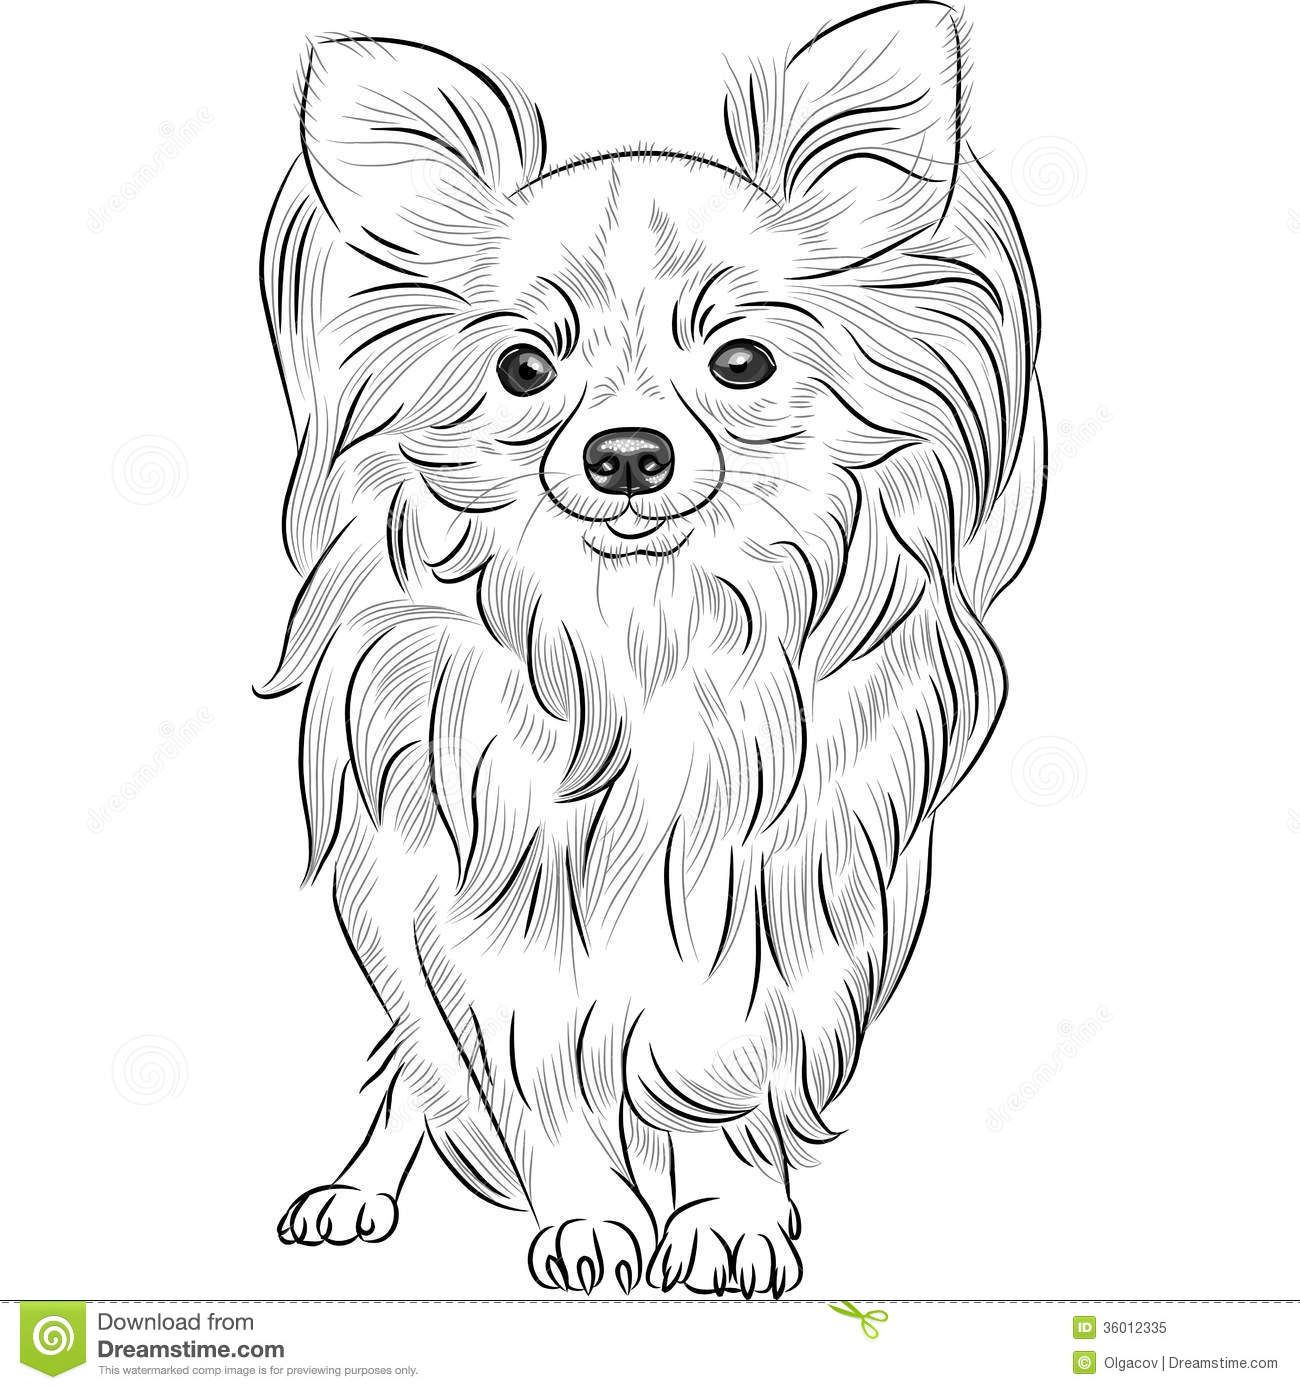 chihuahua sketch - Google Search | Illustrations | Pinterest